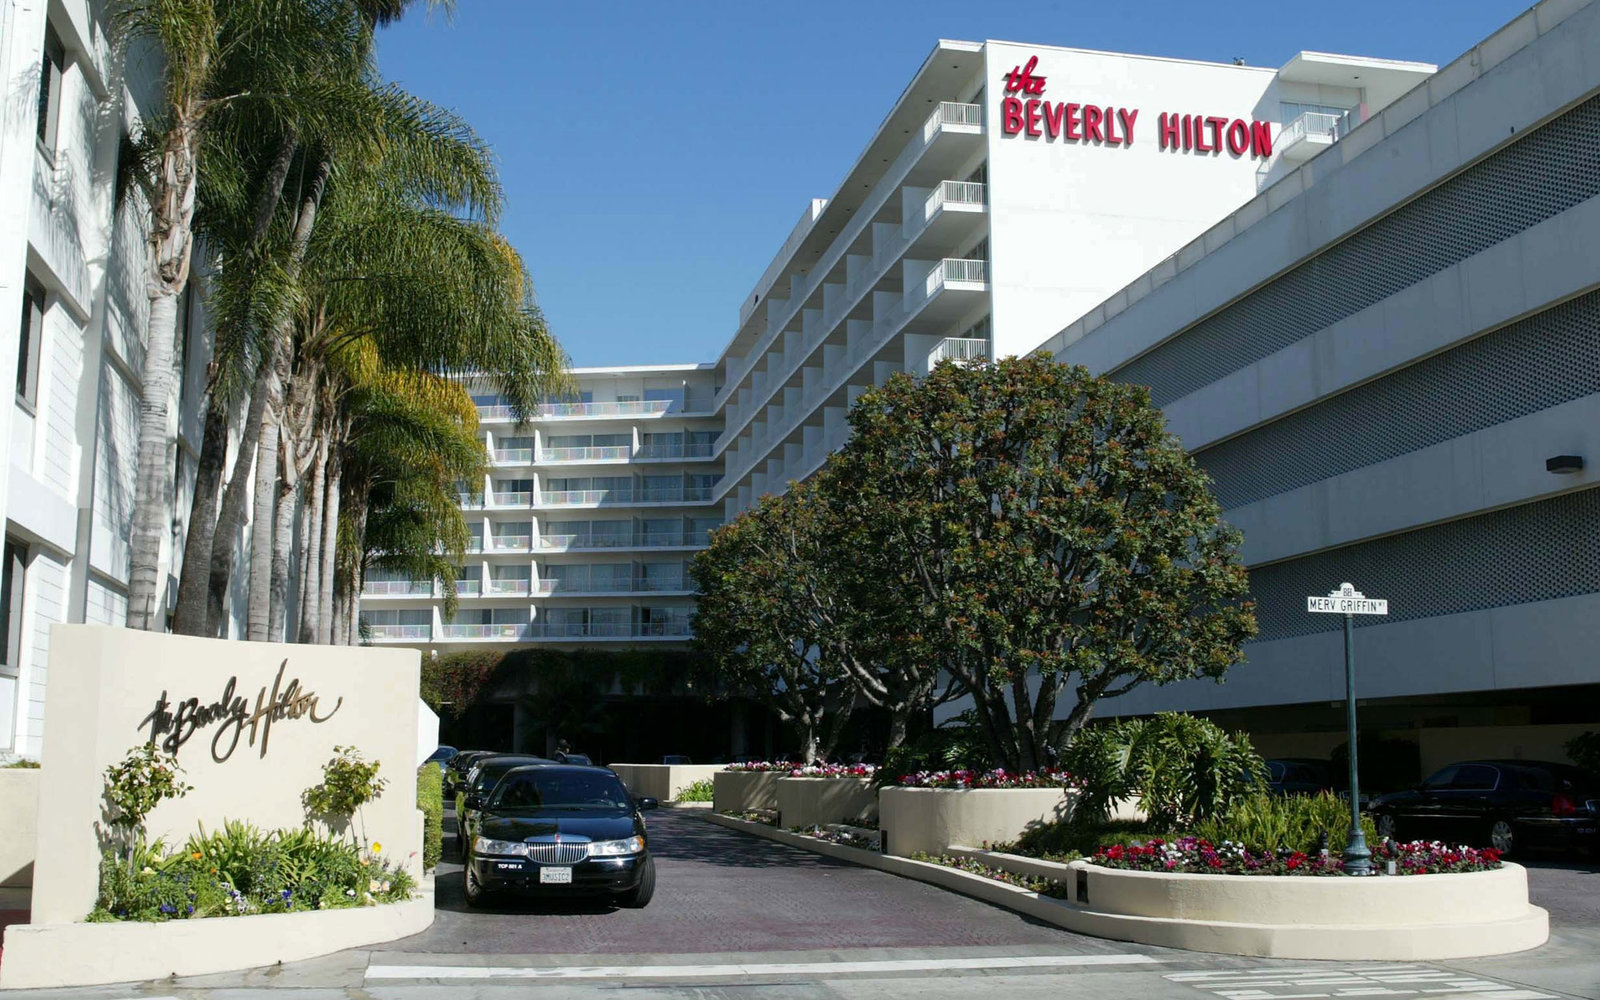 C4d16f Beverly Hilton Hotel Los Angeles America Image Shot 2008 Exact Date Unknown